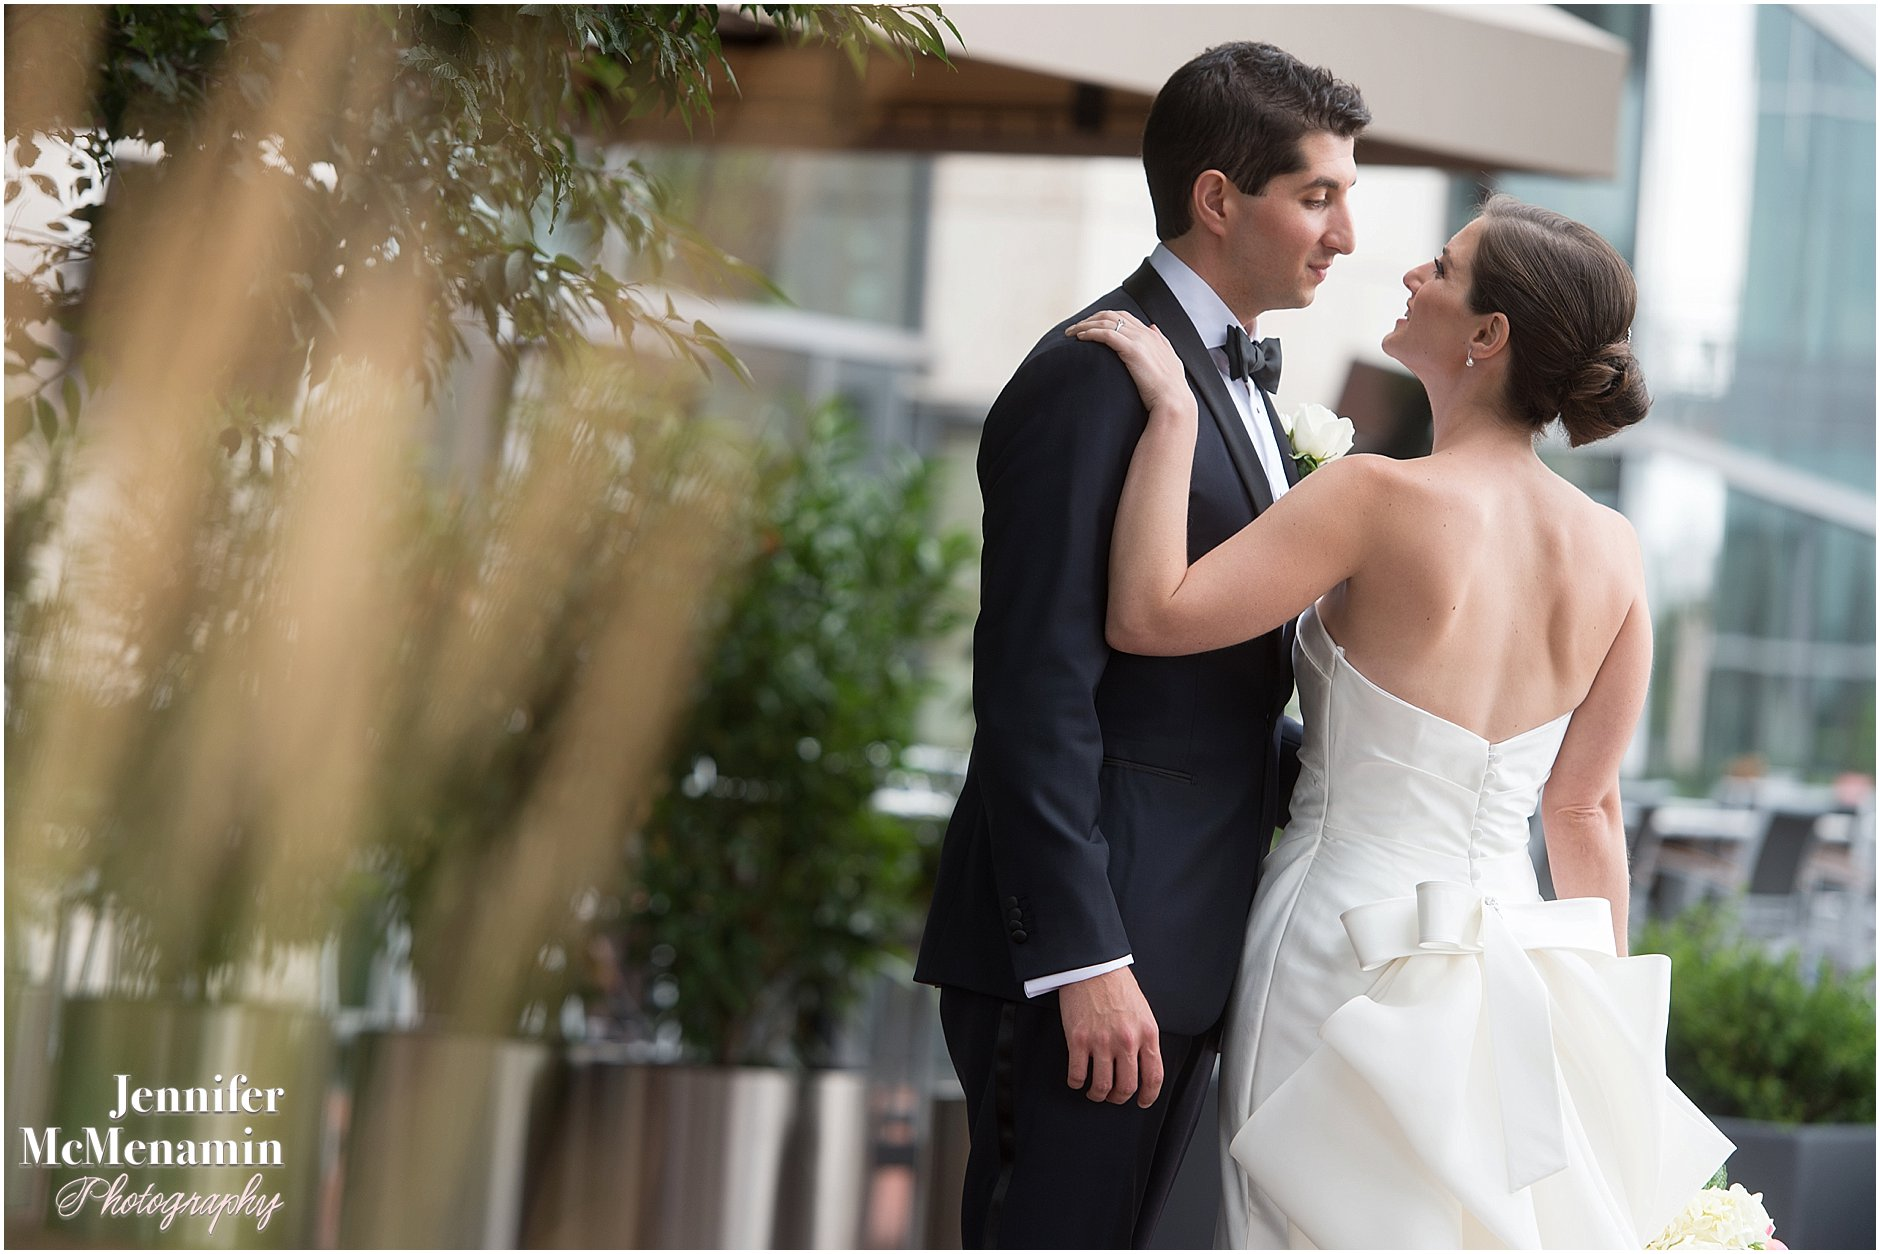 013-Jennifer-McMenamin-Photography-Baltimore-Waterfront-Marriott-wedding_0008